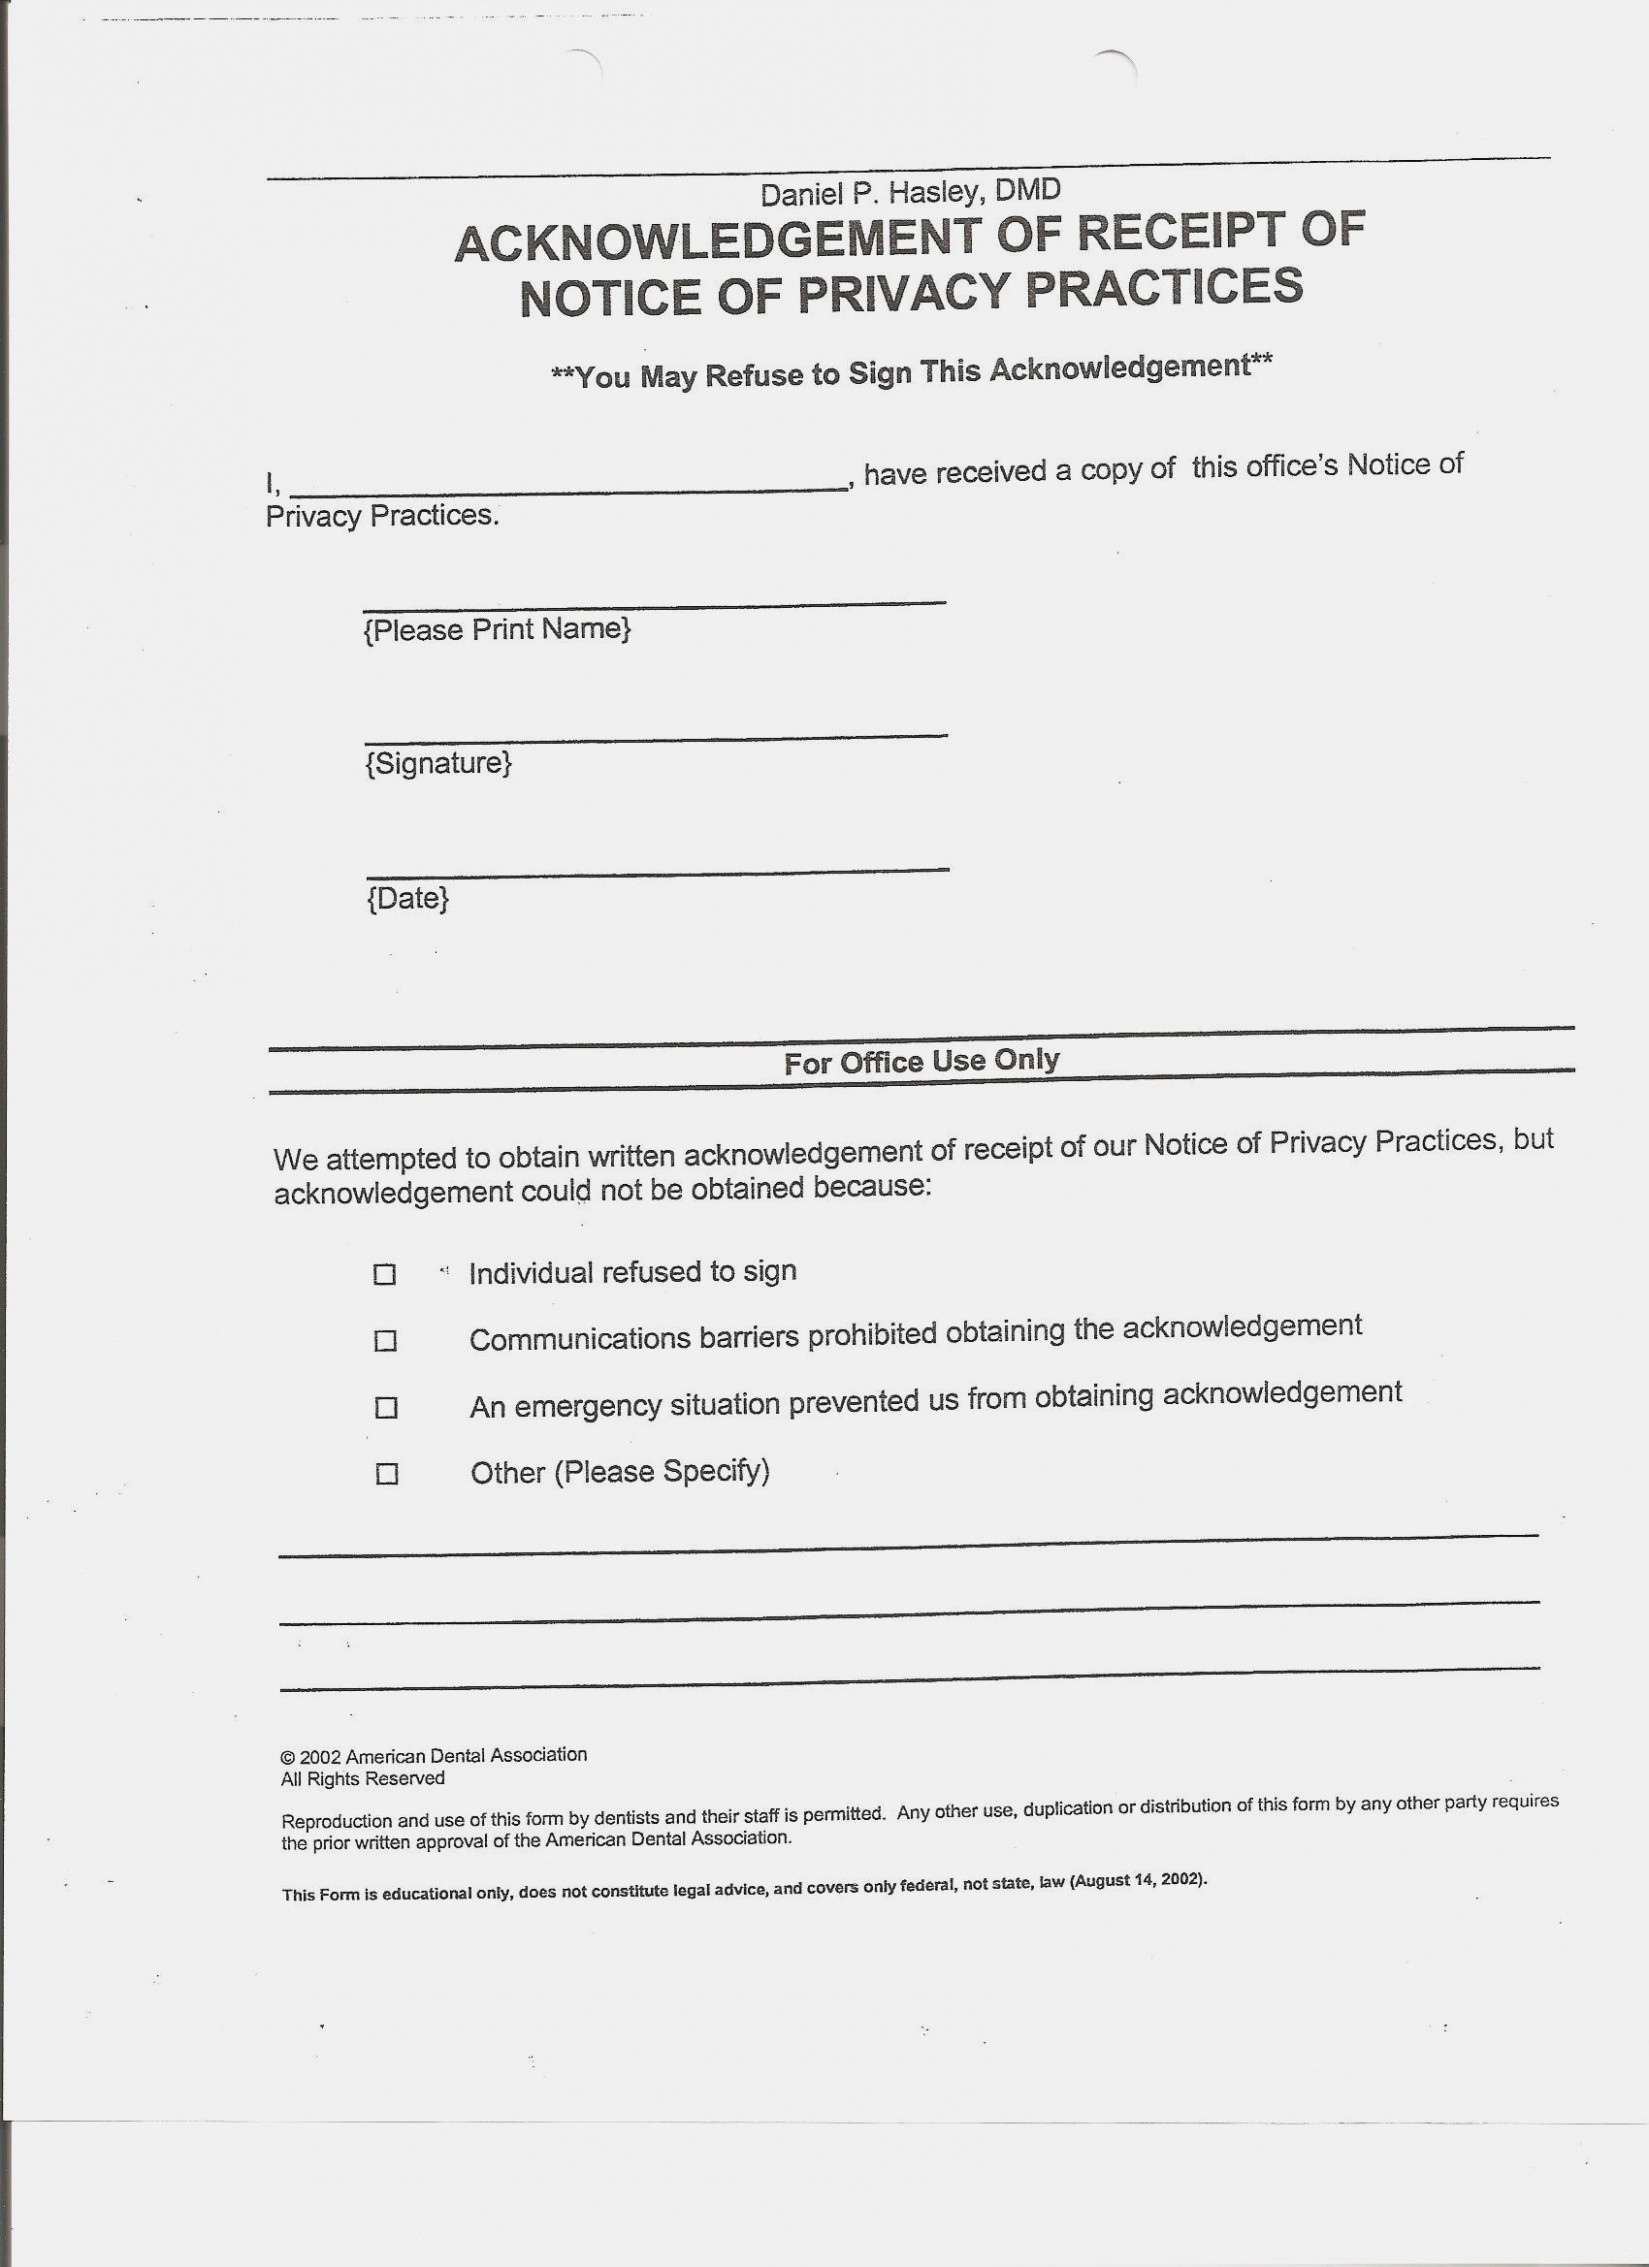 Acknowledgement Of Receipt Of Notice Of Privacy Practices Form